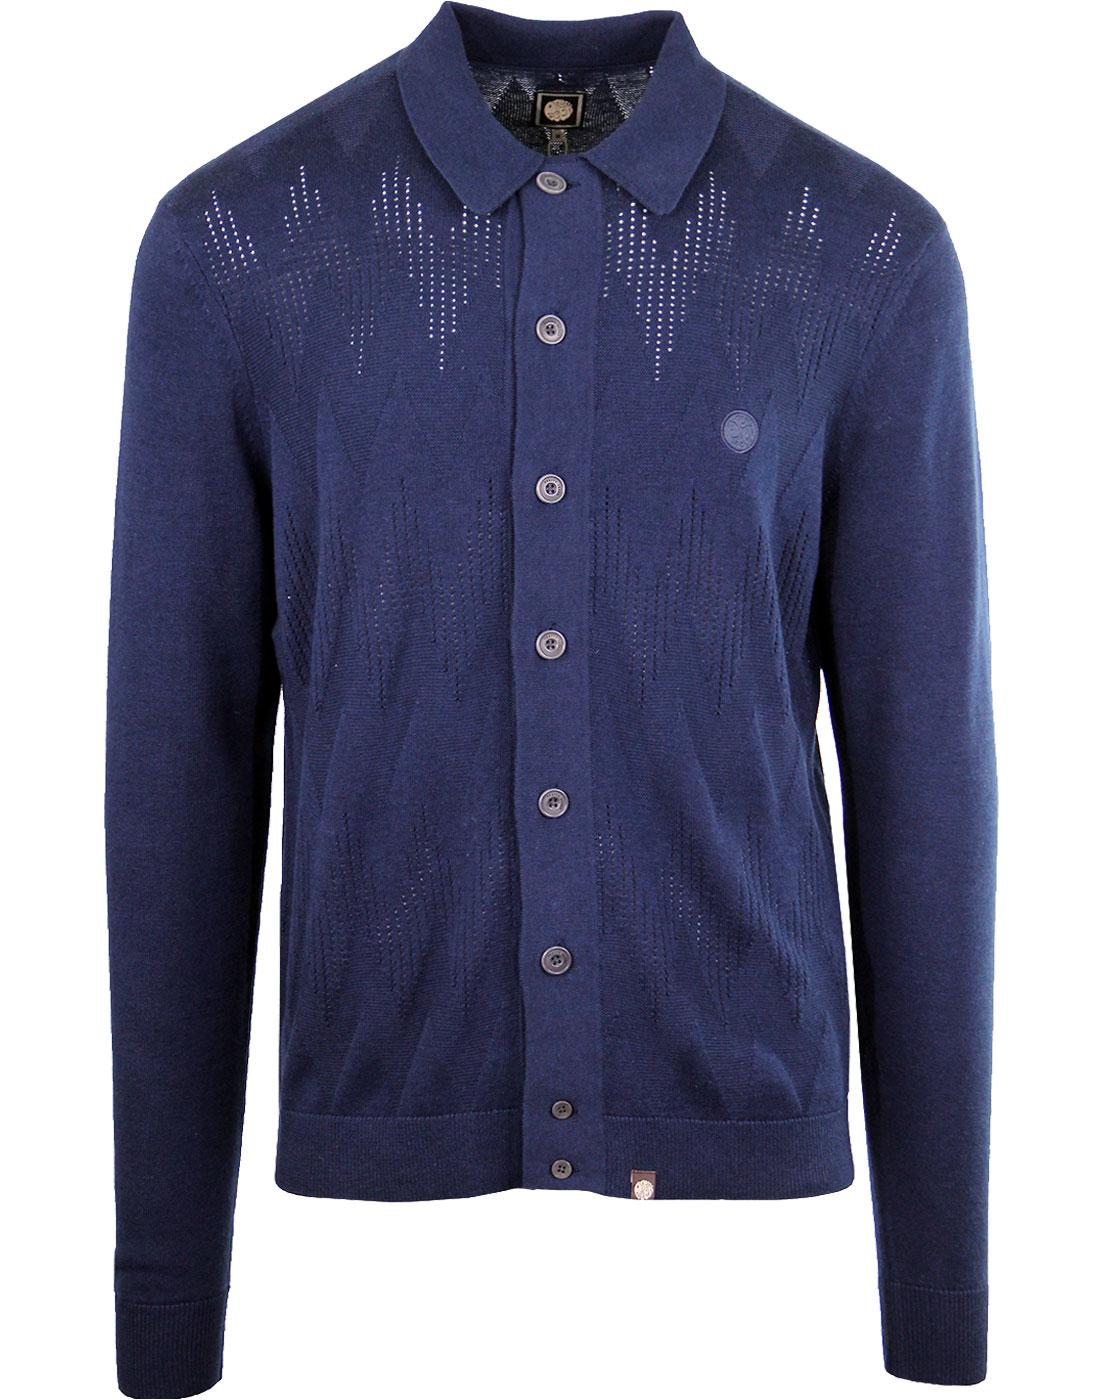 PRETTY GREEN 1960's Mod Tonal Wave Cardigan NAVY